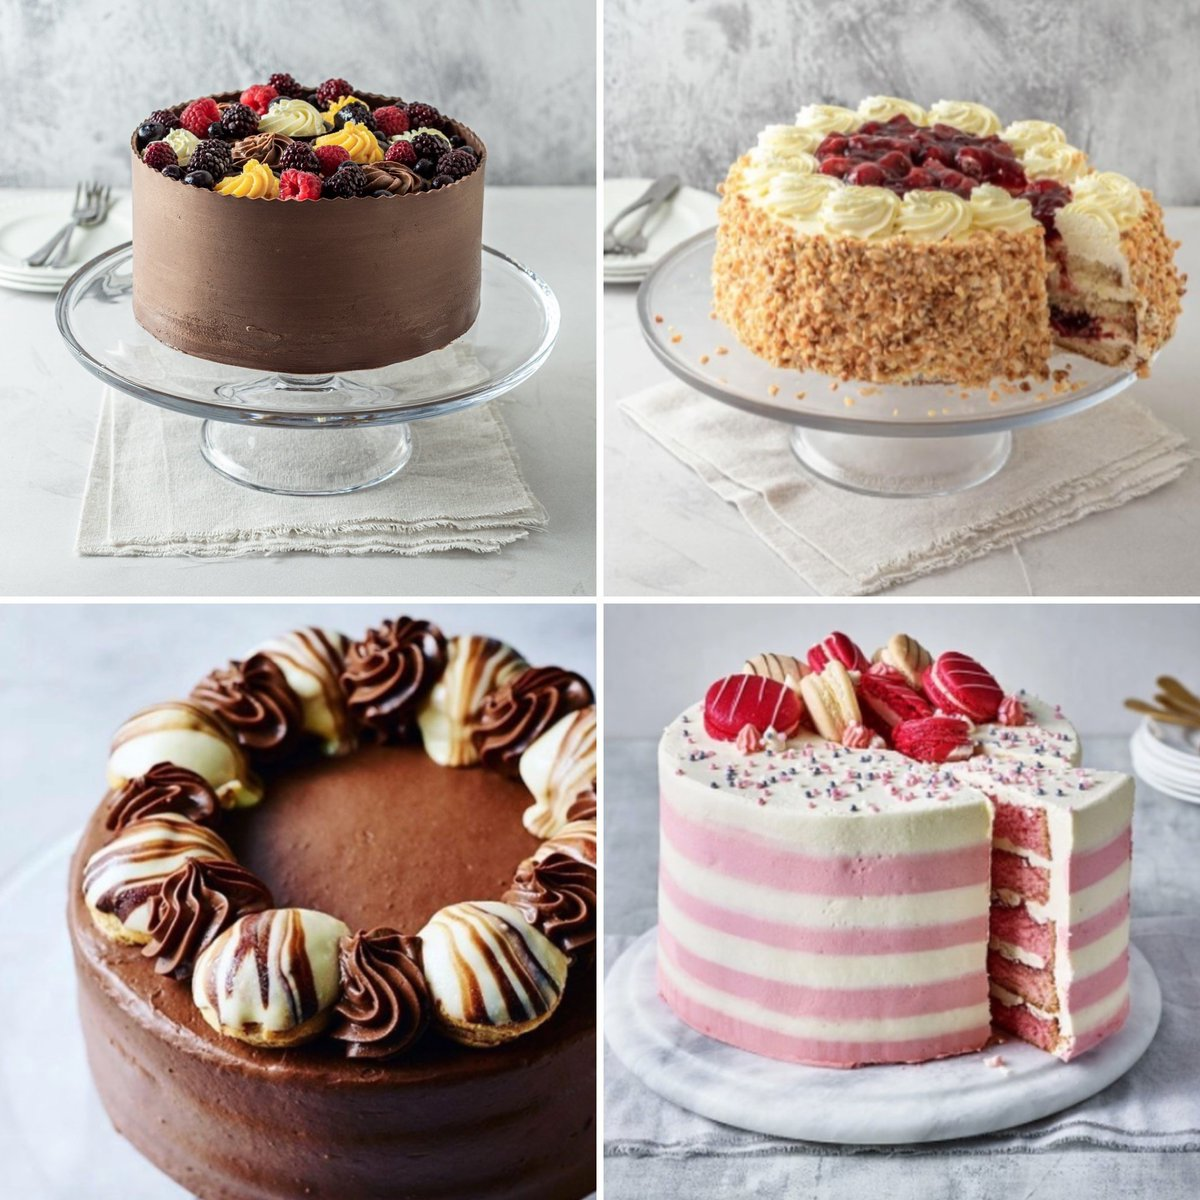 Anyone getting ready for the weekend? ☺️    Your favourite cakes are selling out FAST! Be quick and order your cake whilst they're in stock ready for the weekend. 🍰   Order now: https://t.co/TaOqA9S04U https://t.co/ZArEHd8aex